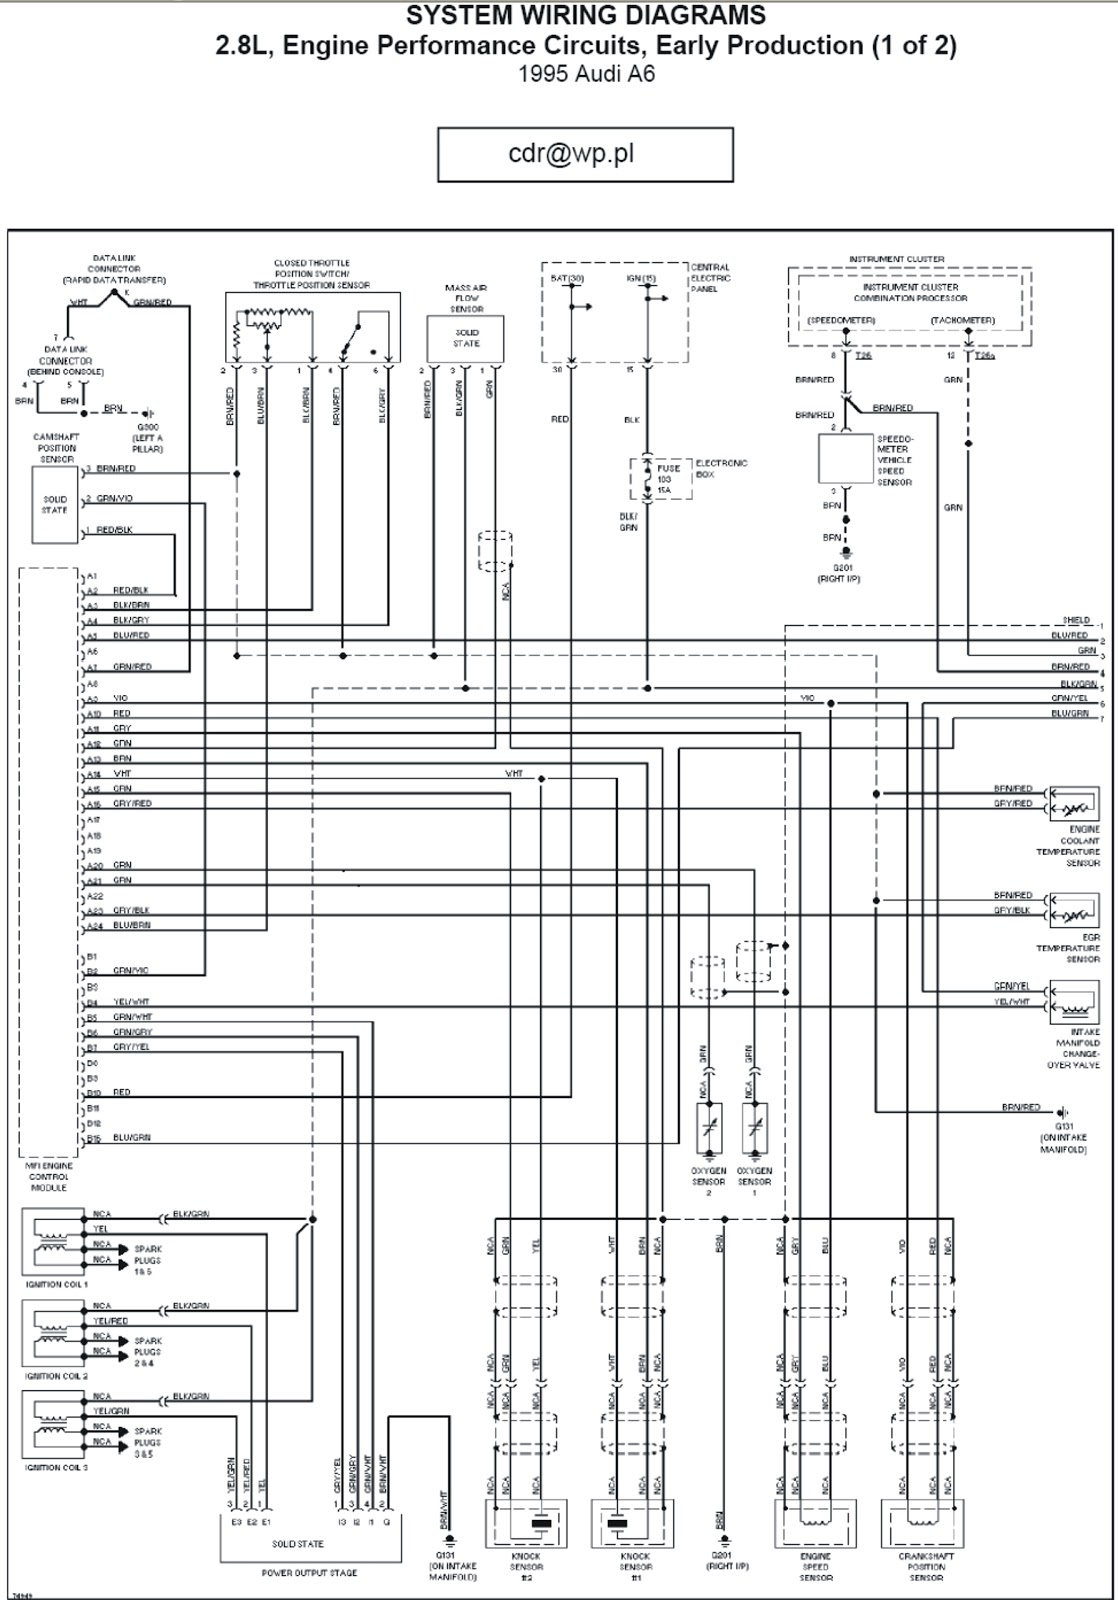 Wiring Diagrams Audi A6 - wiring diagram diode-venus -  diode-venus.hoteloctavia.it | Audi A6 Wiring Diagrams Free |  | hoteloctavia.it